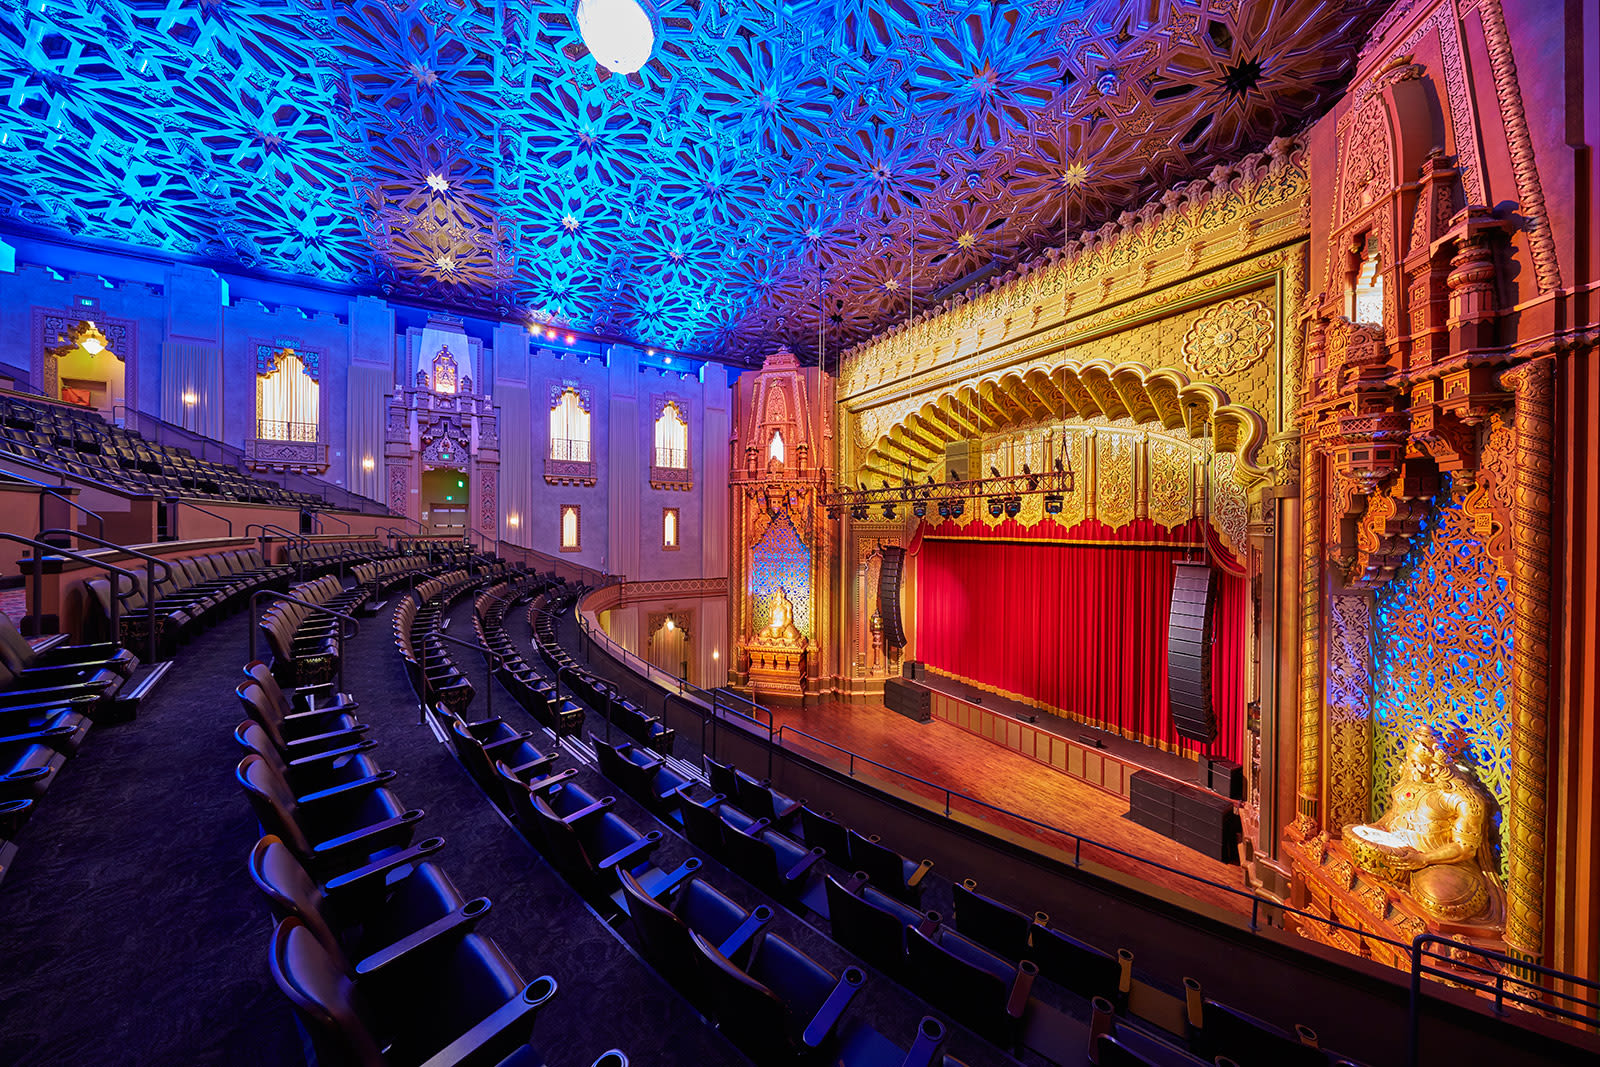 Fox Theater Upcoming Events In Oakland On Dothebay